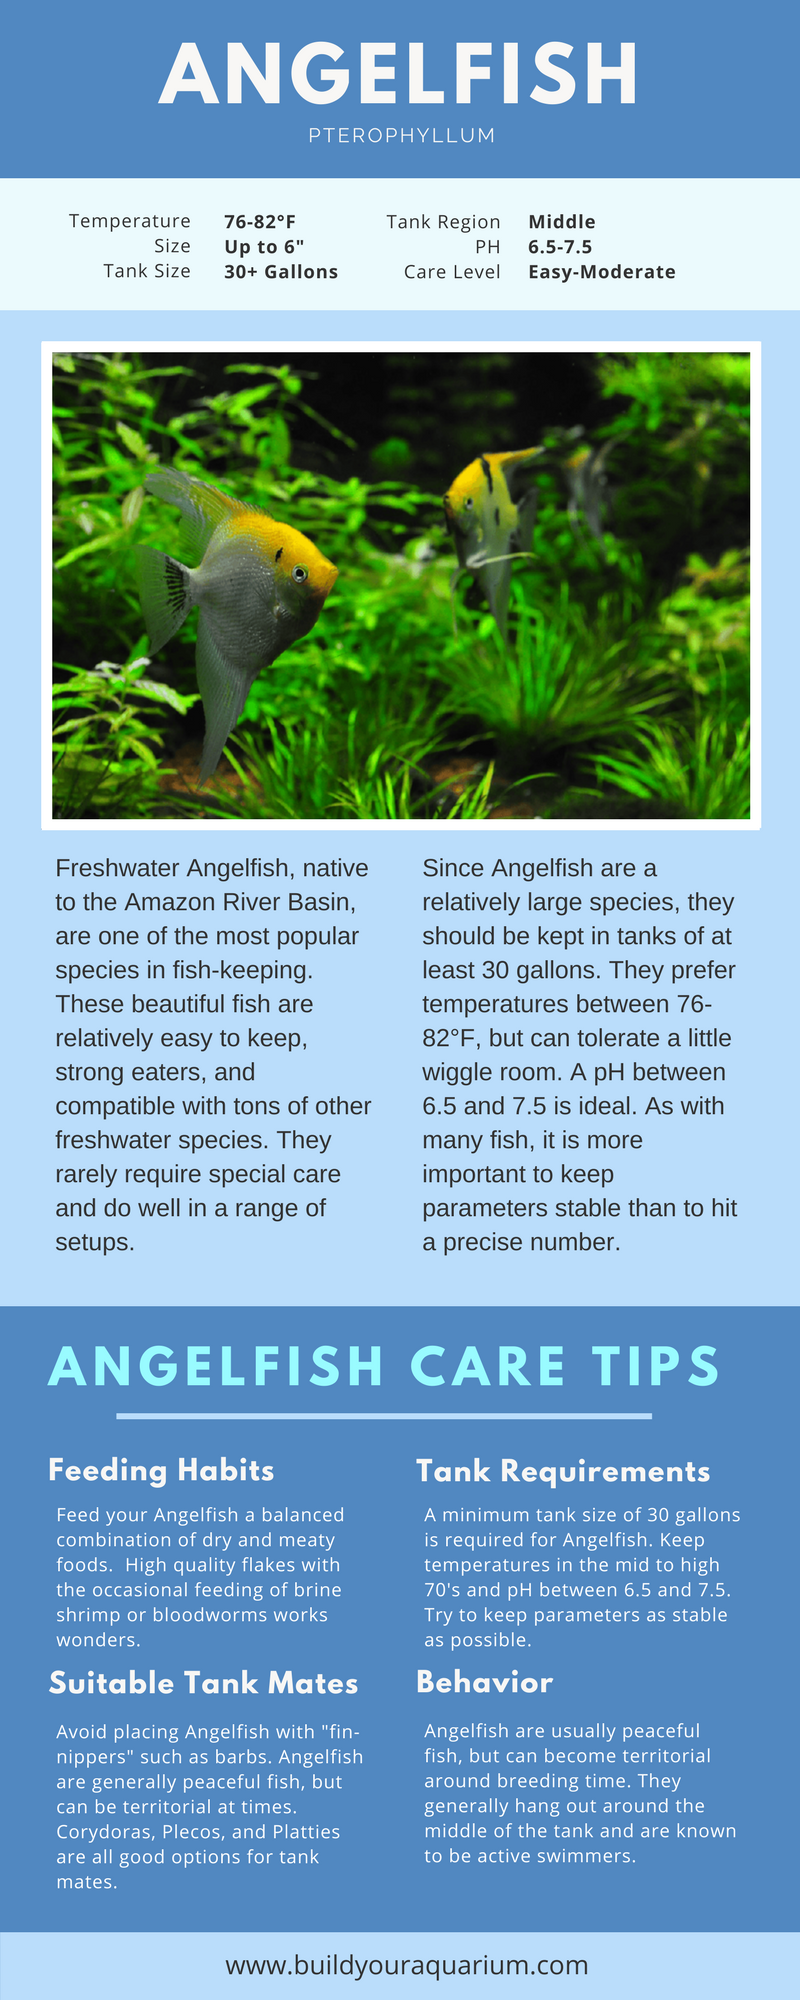 Pin By St3v3npin5 On Aquariuminfo Pinterest Angelfish And